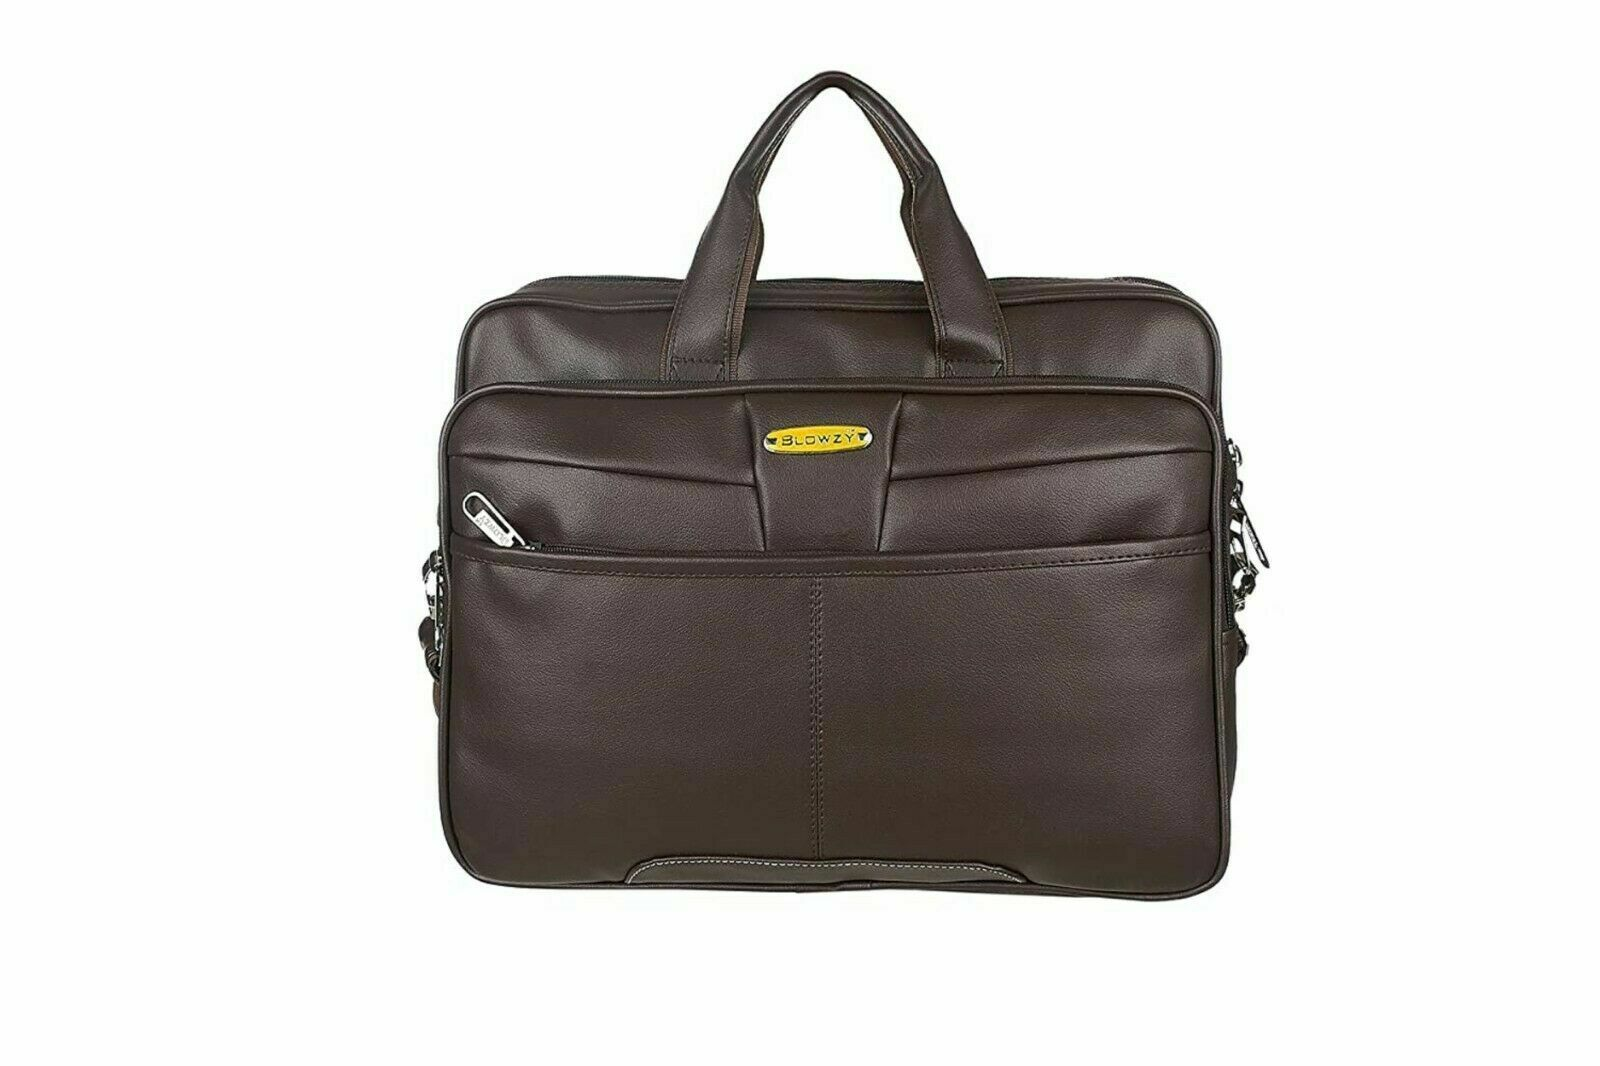 Peter india 15.6 Inch Brown Leather Sling Laptop Messenger Bag For Unisex